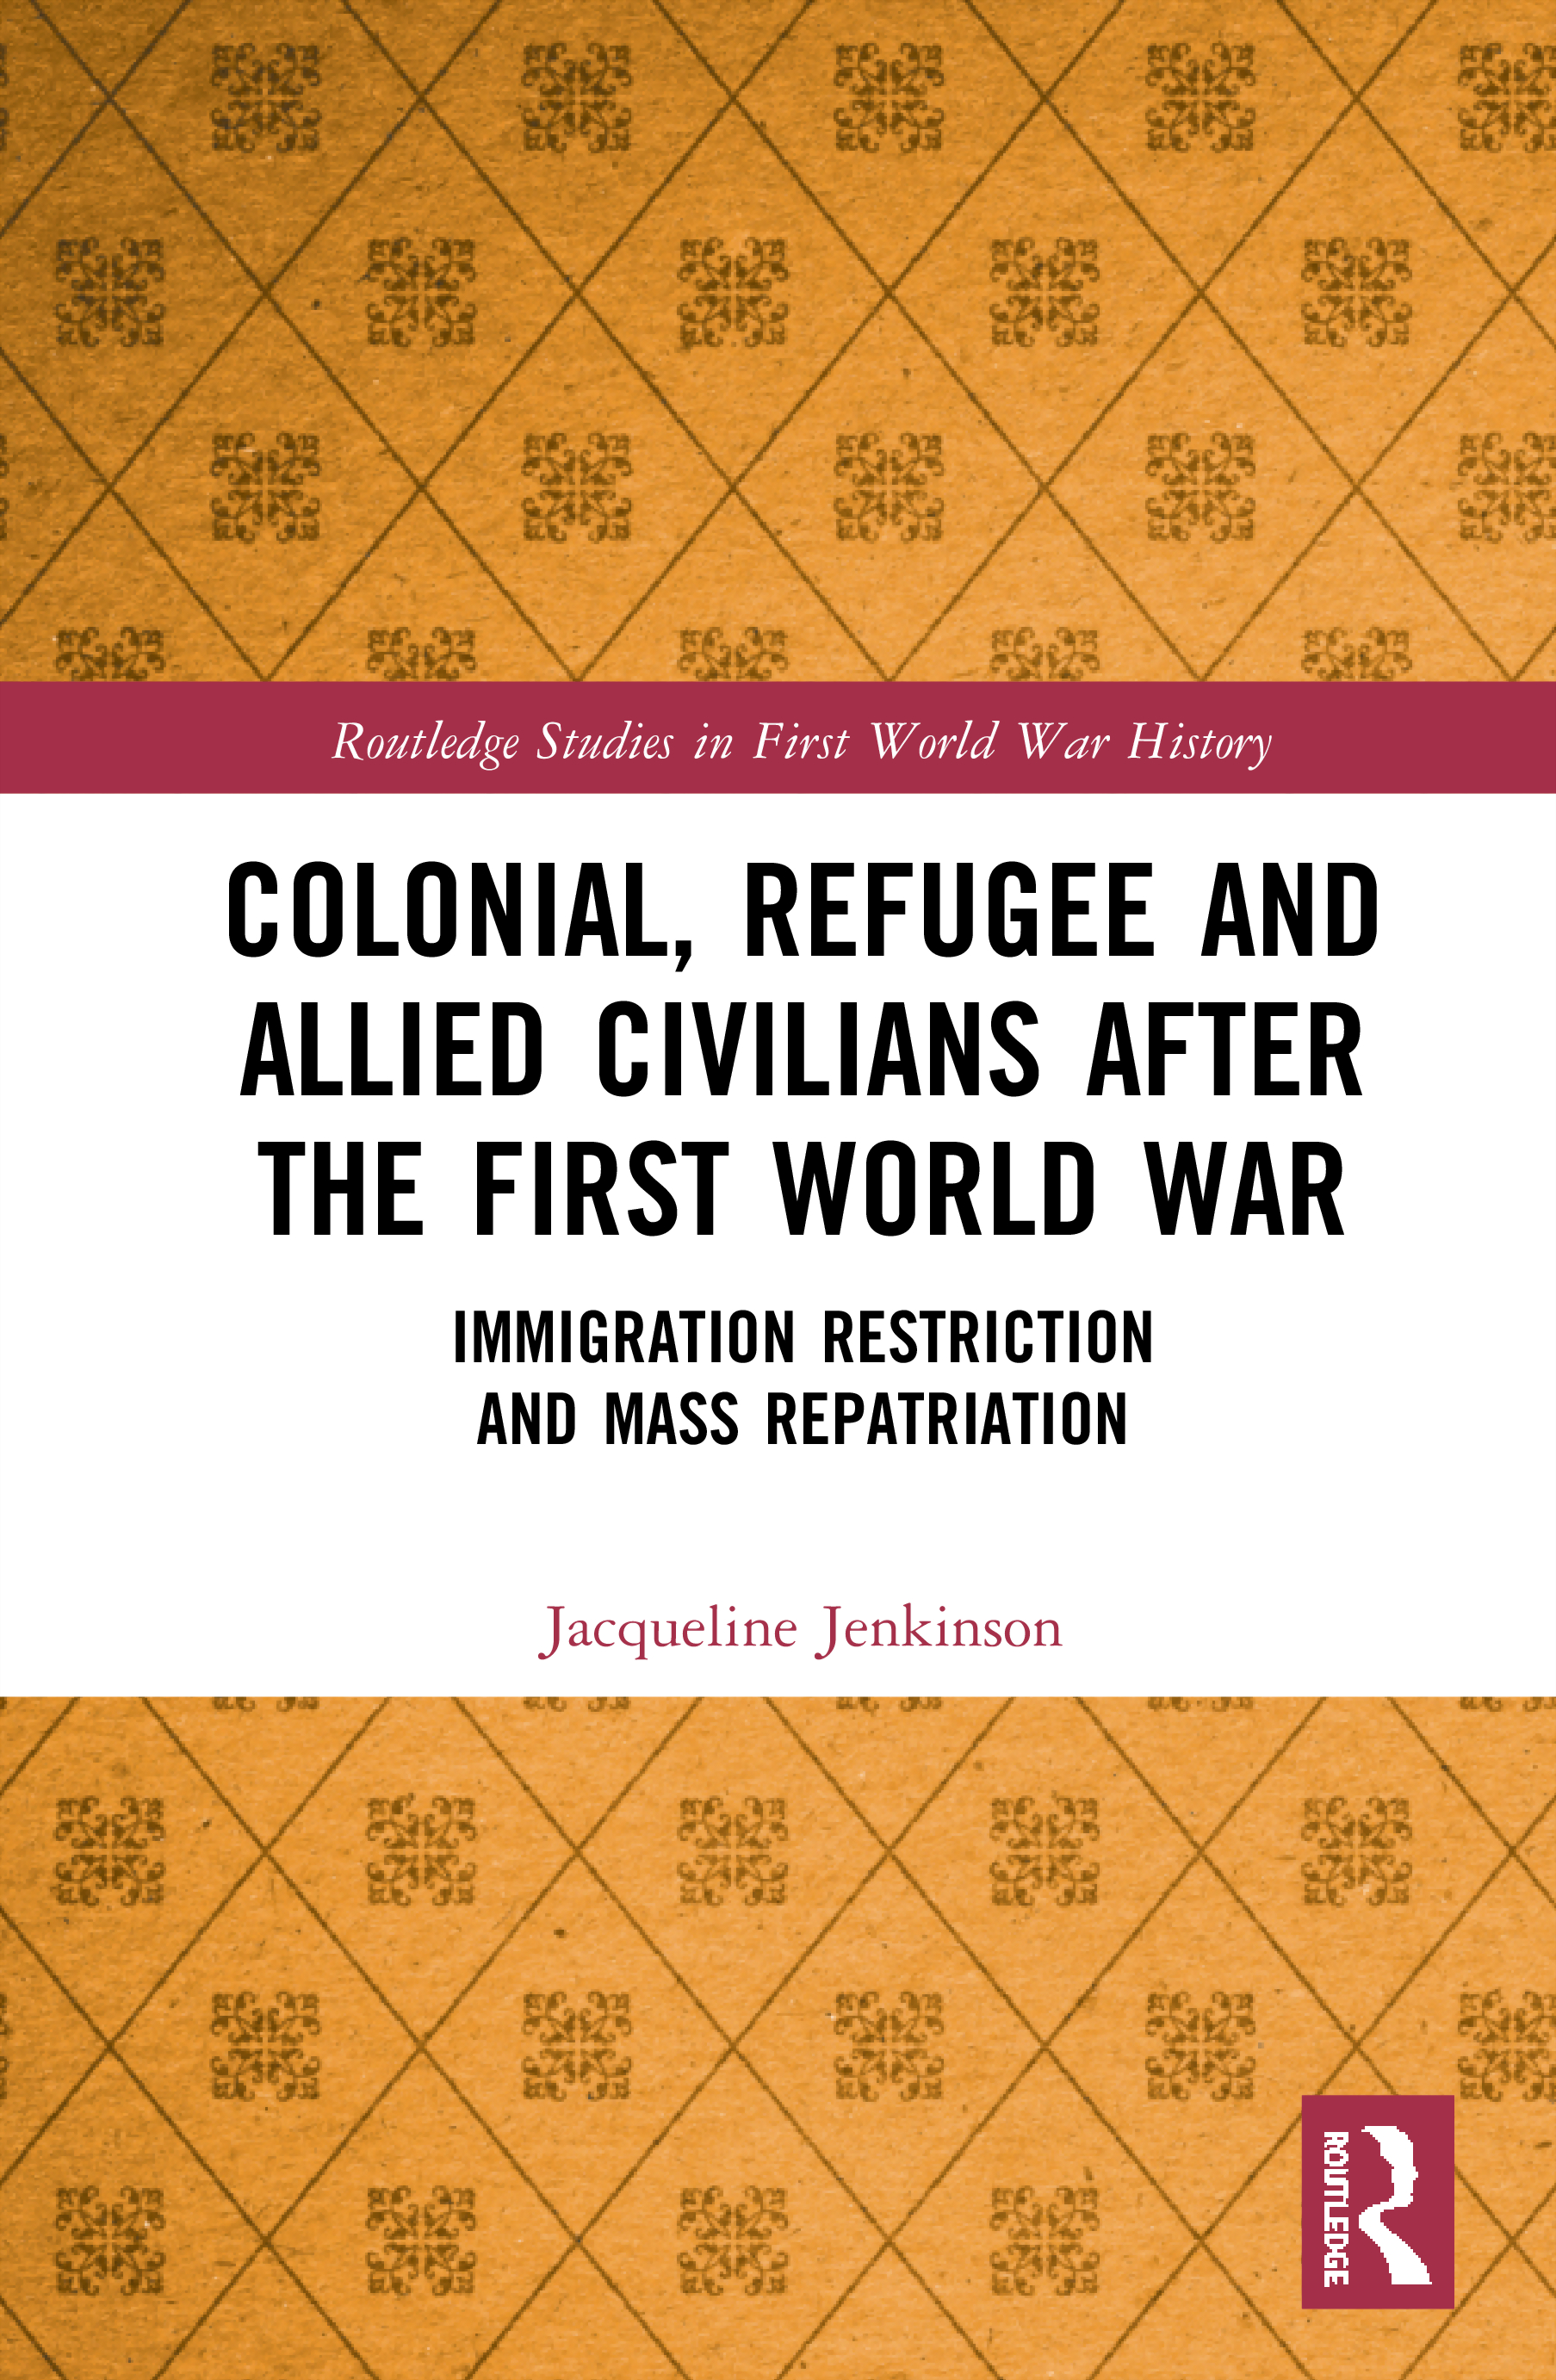 Colonial, Refugee and Allied Civilians after the First World War: Immigration Restriction and Mass Repatriation book cover